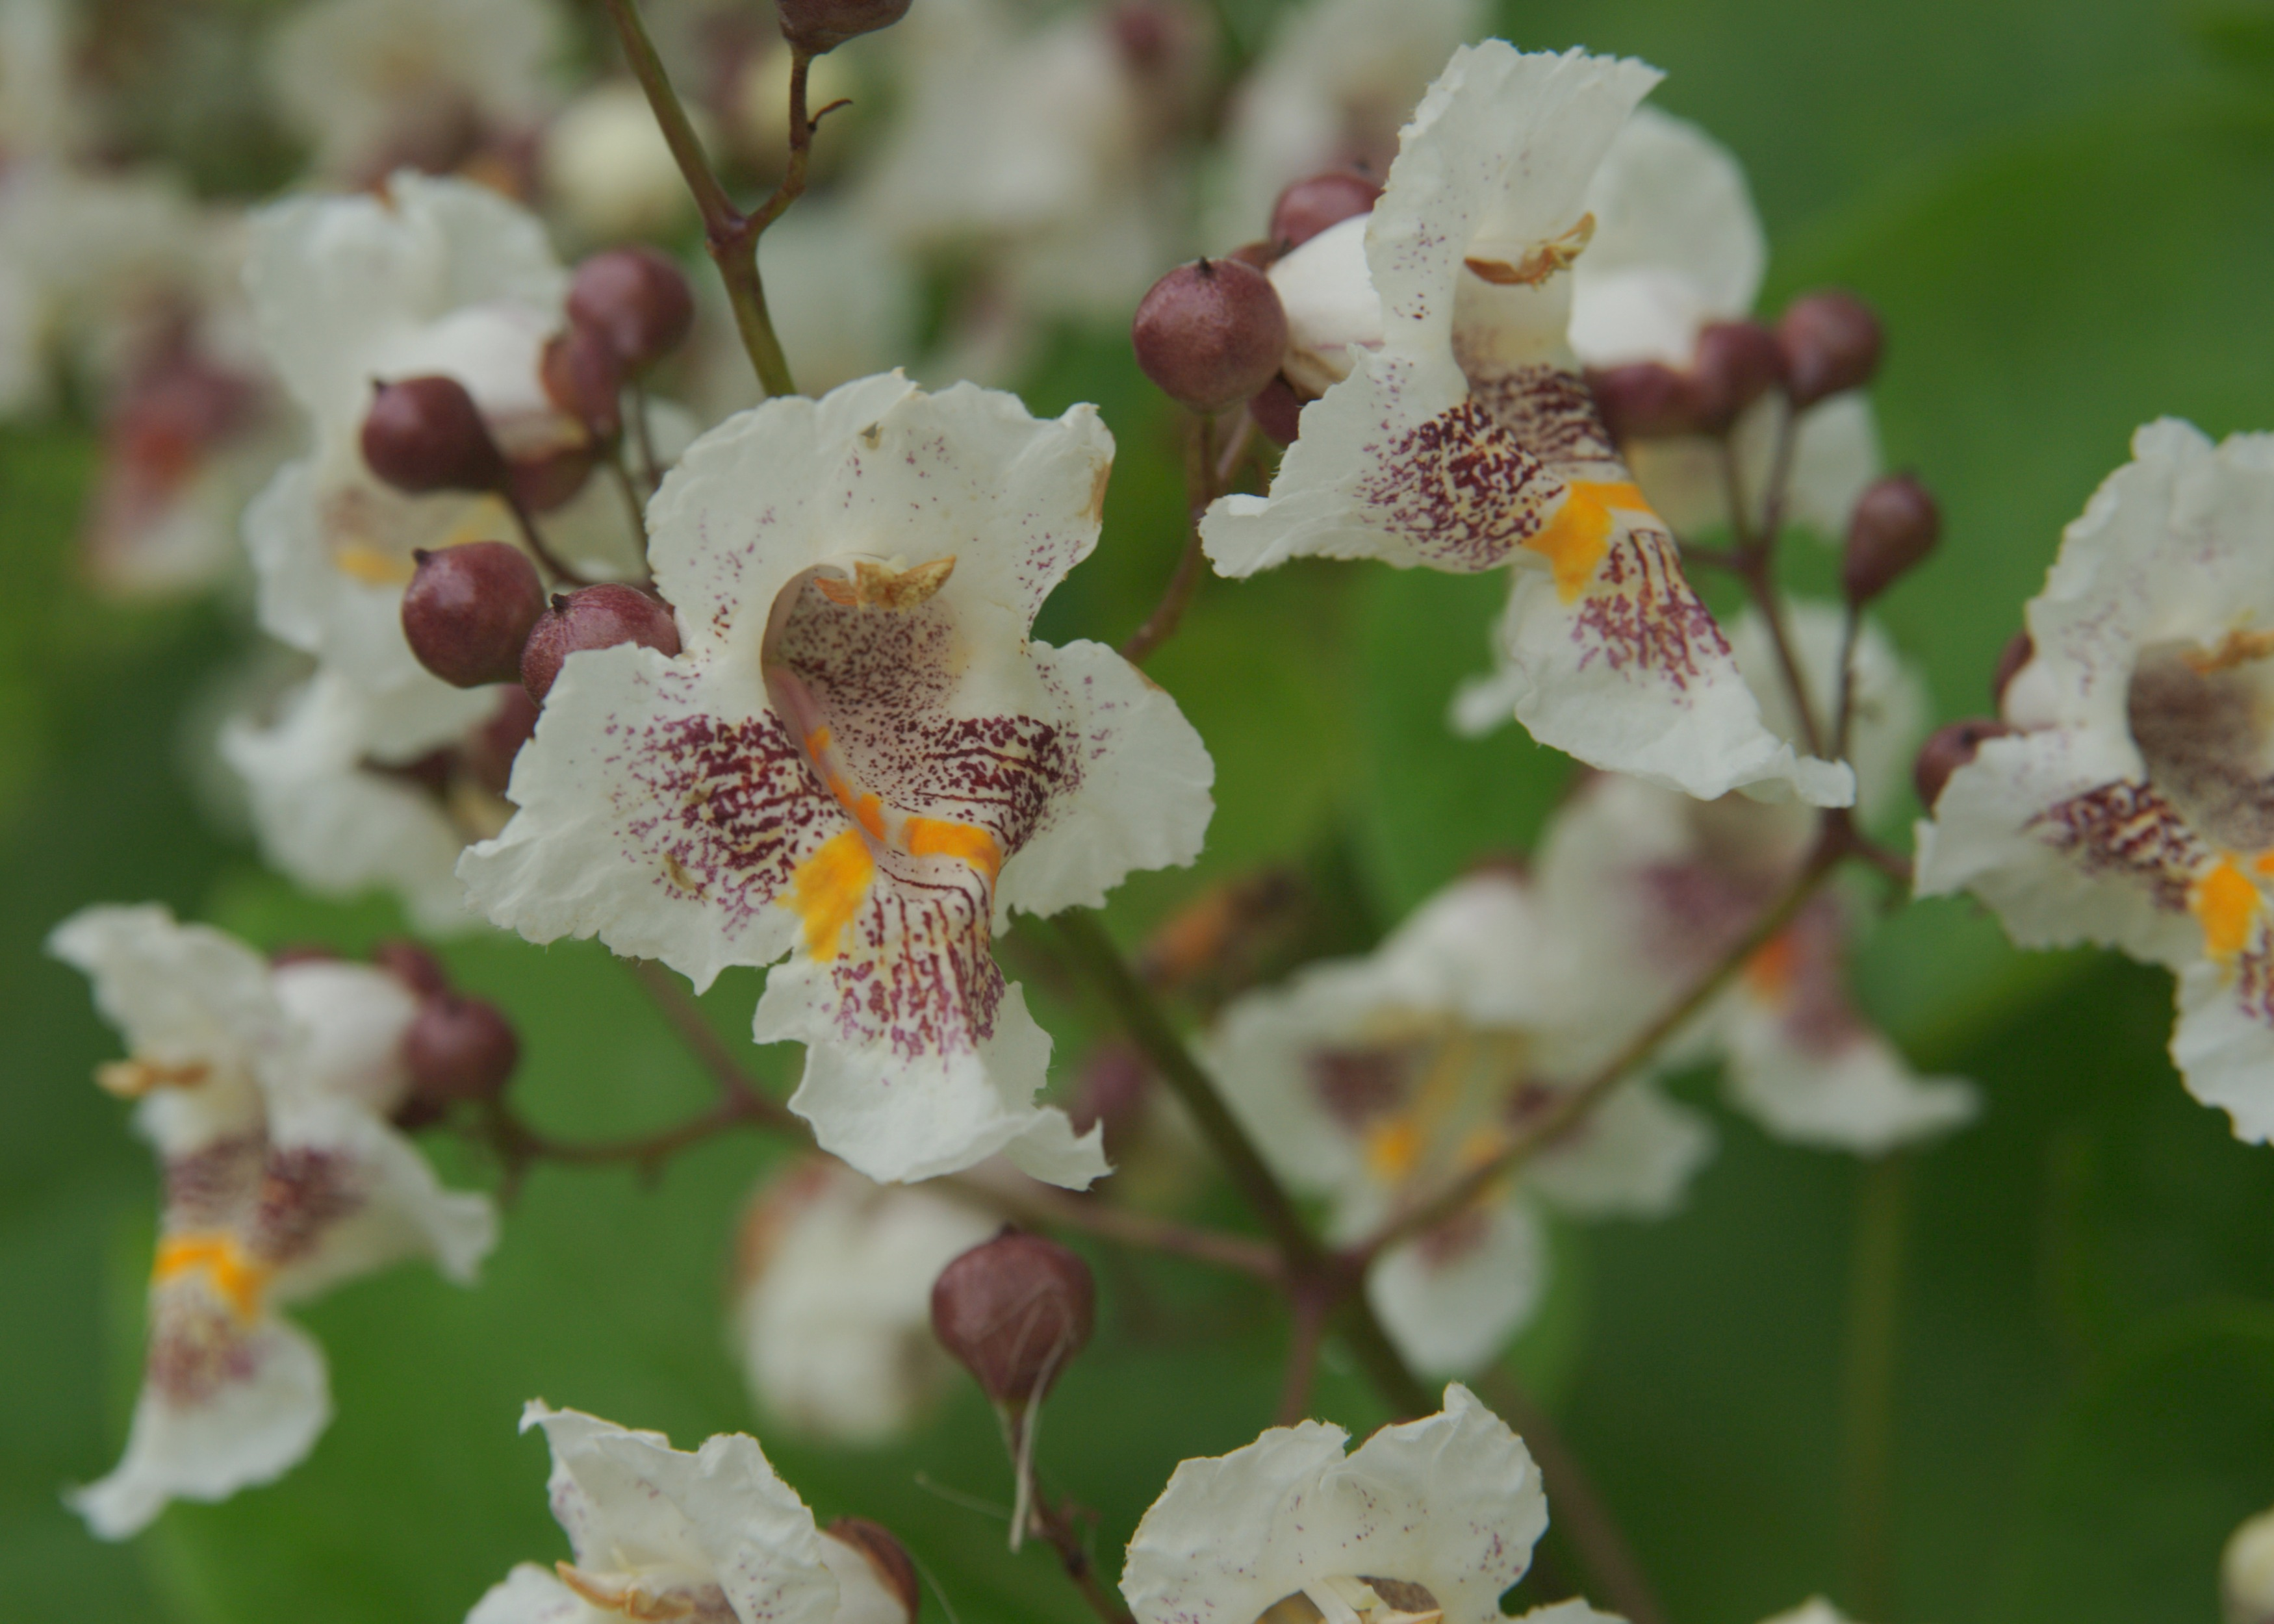 Close up of flowers of Indian bean tree (Catalpa bignonioides)